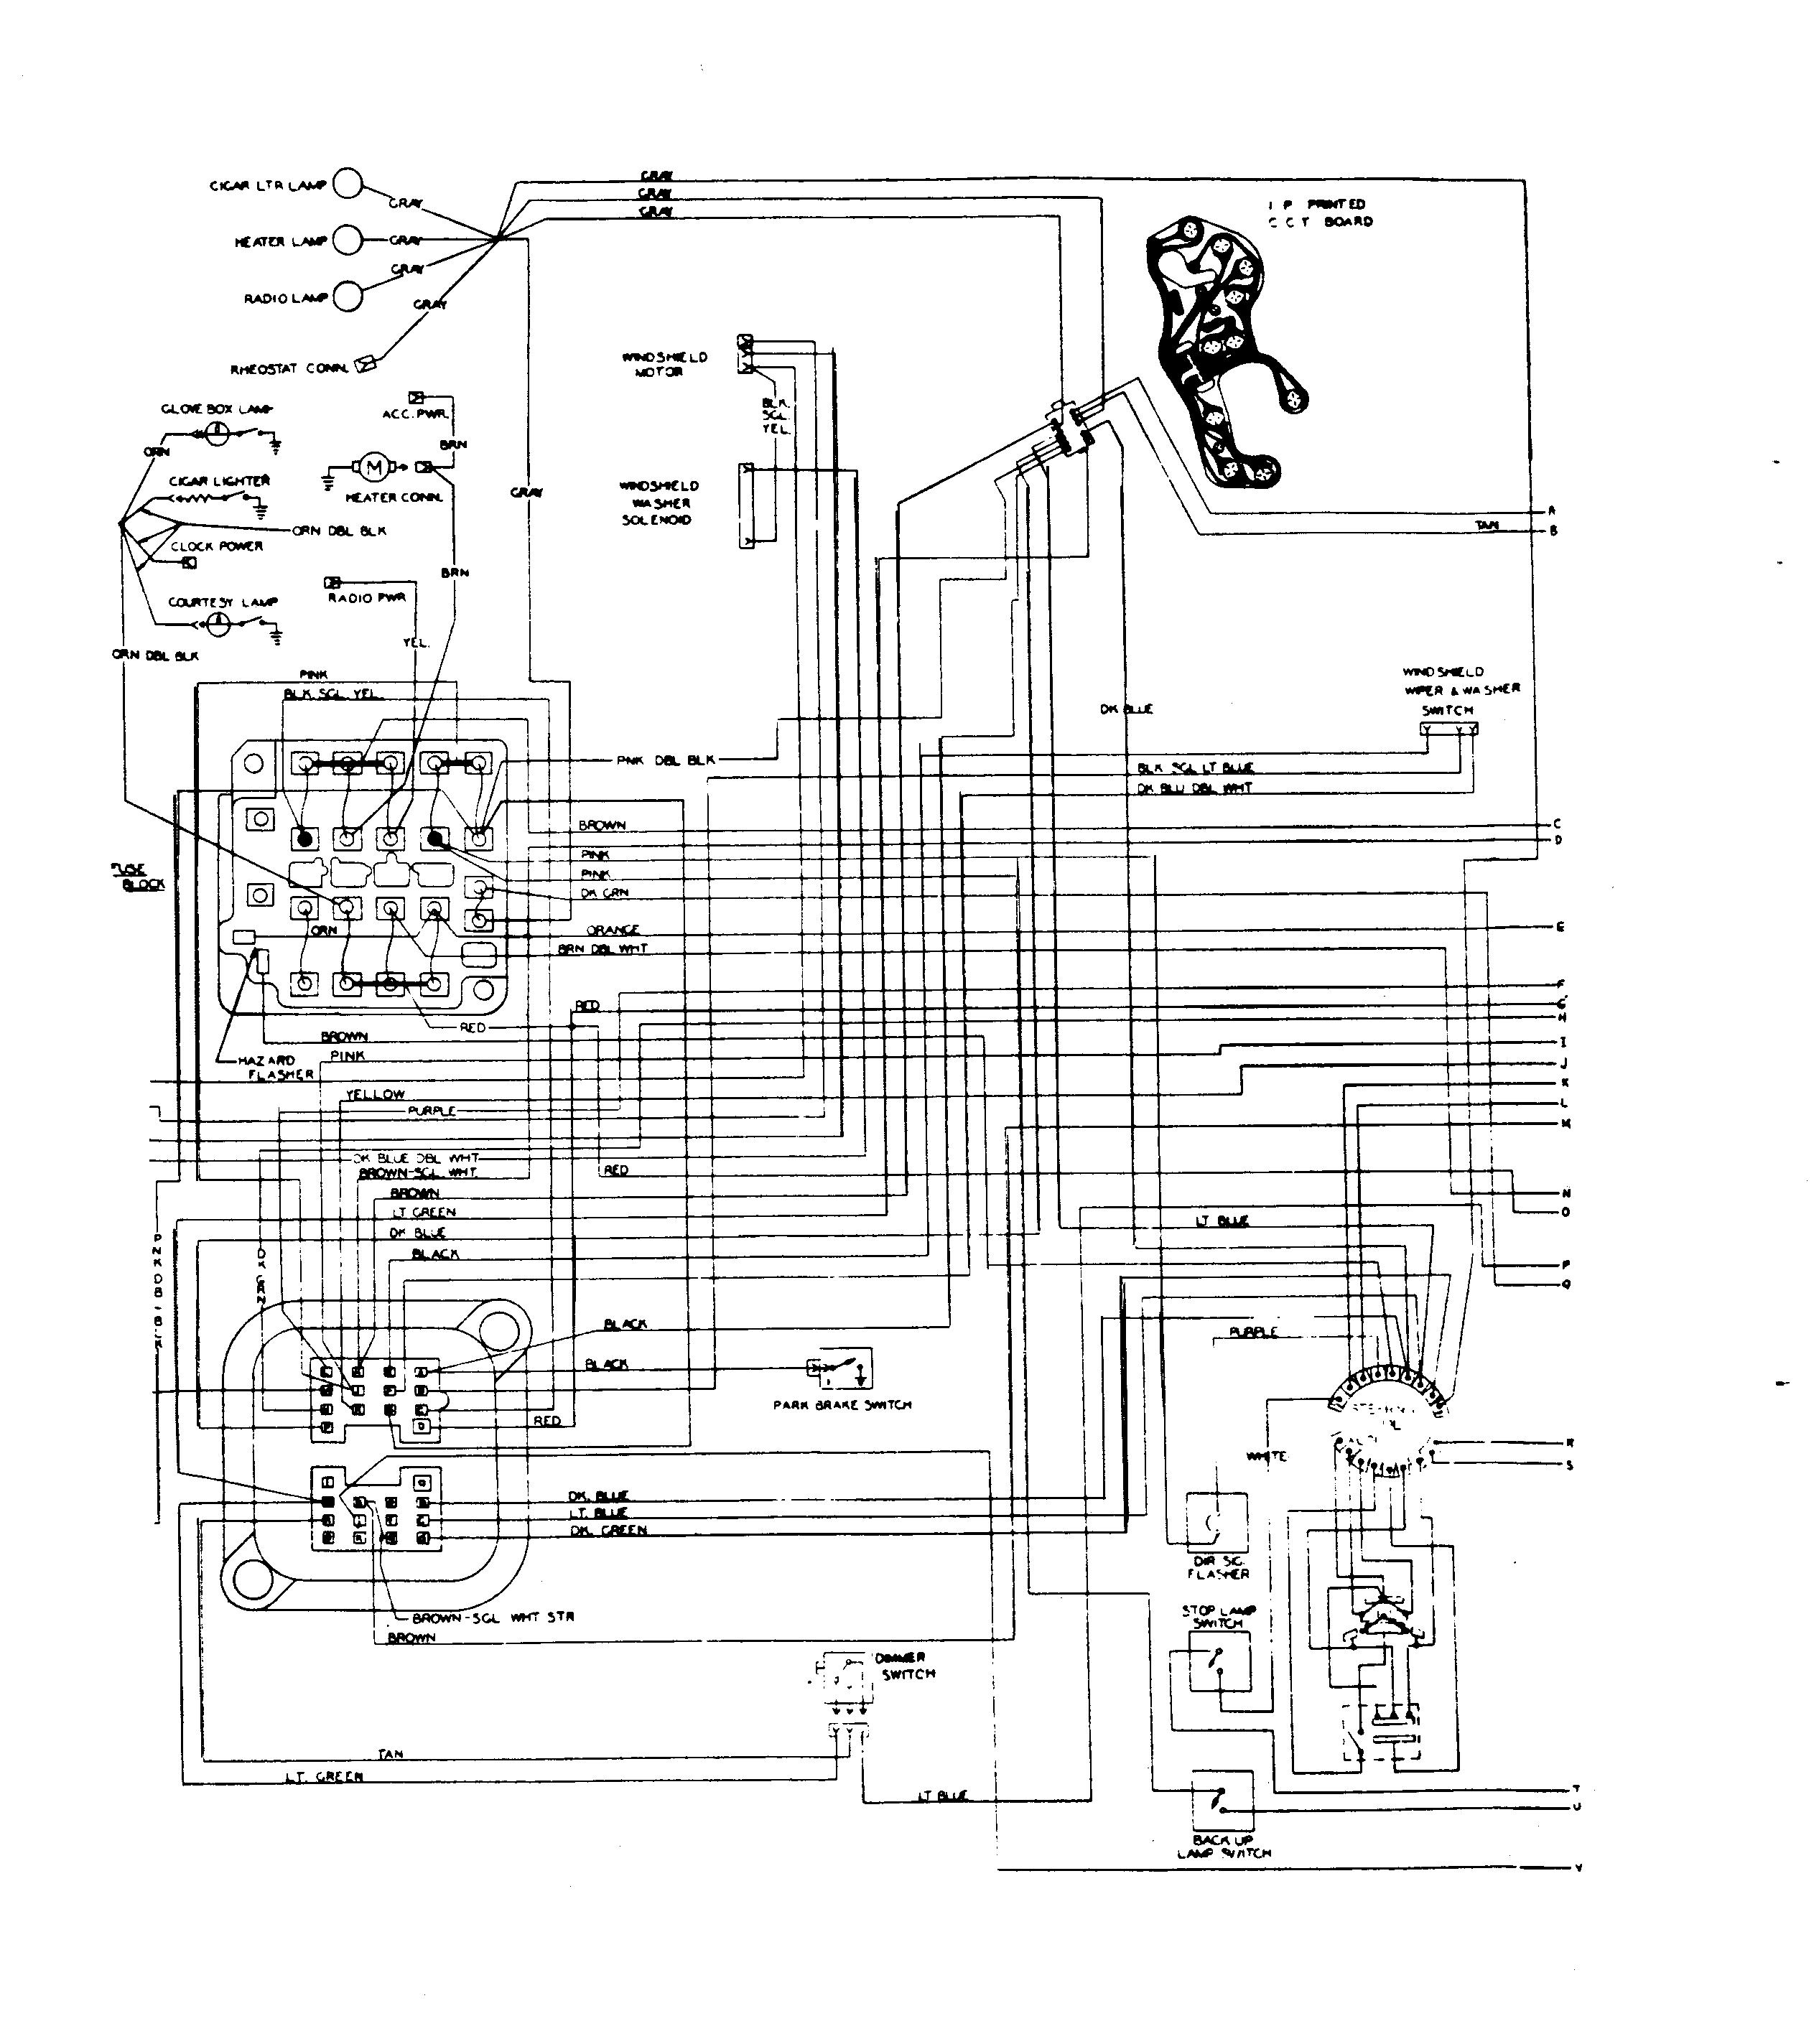 saturn wiring schematic 2000 saturn ls1 radio wiring diagram 2000 image 2002 saturn sl1 radio wiring diagram 2002 image